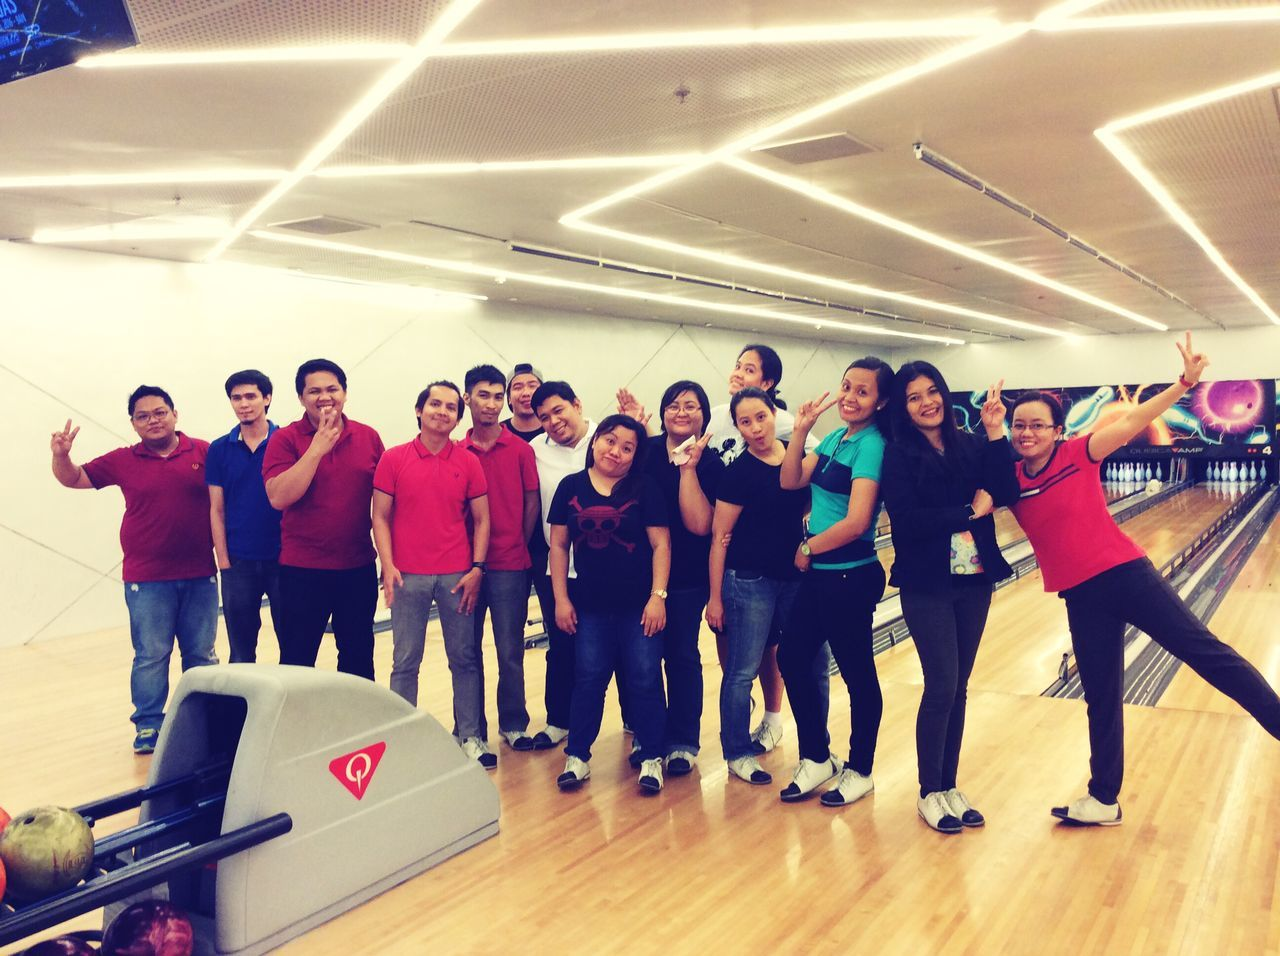 Happy Mid Adult Mid Adult Men Men Full Length Indoors  Standing Adult Student People Large Group Of People Adults Only Togetherness Teamwork Young Adult Only Men Day Bowling Bowling Alley Happy People Event